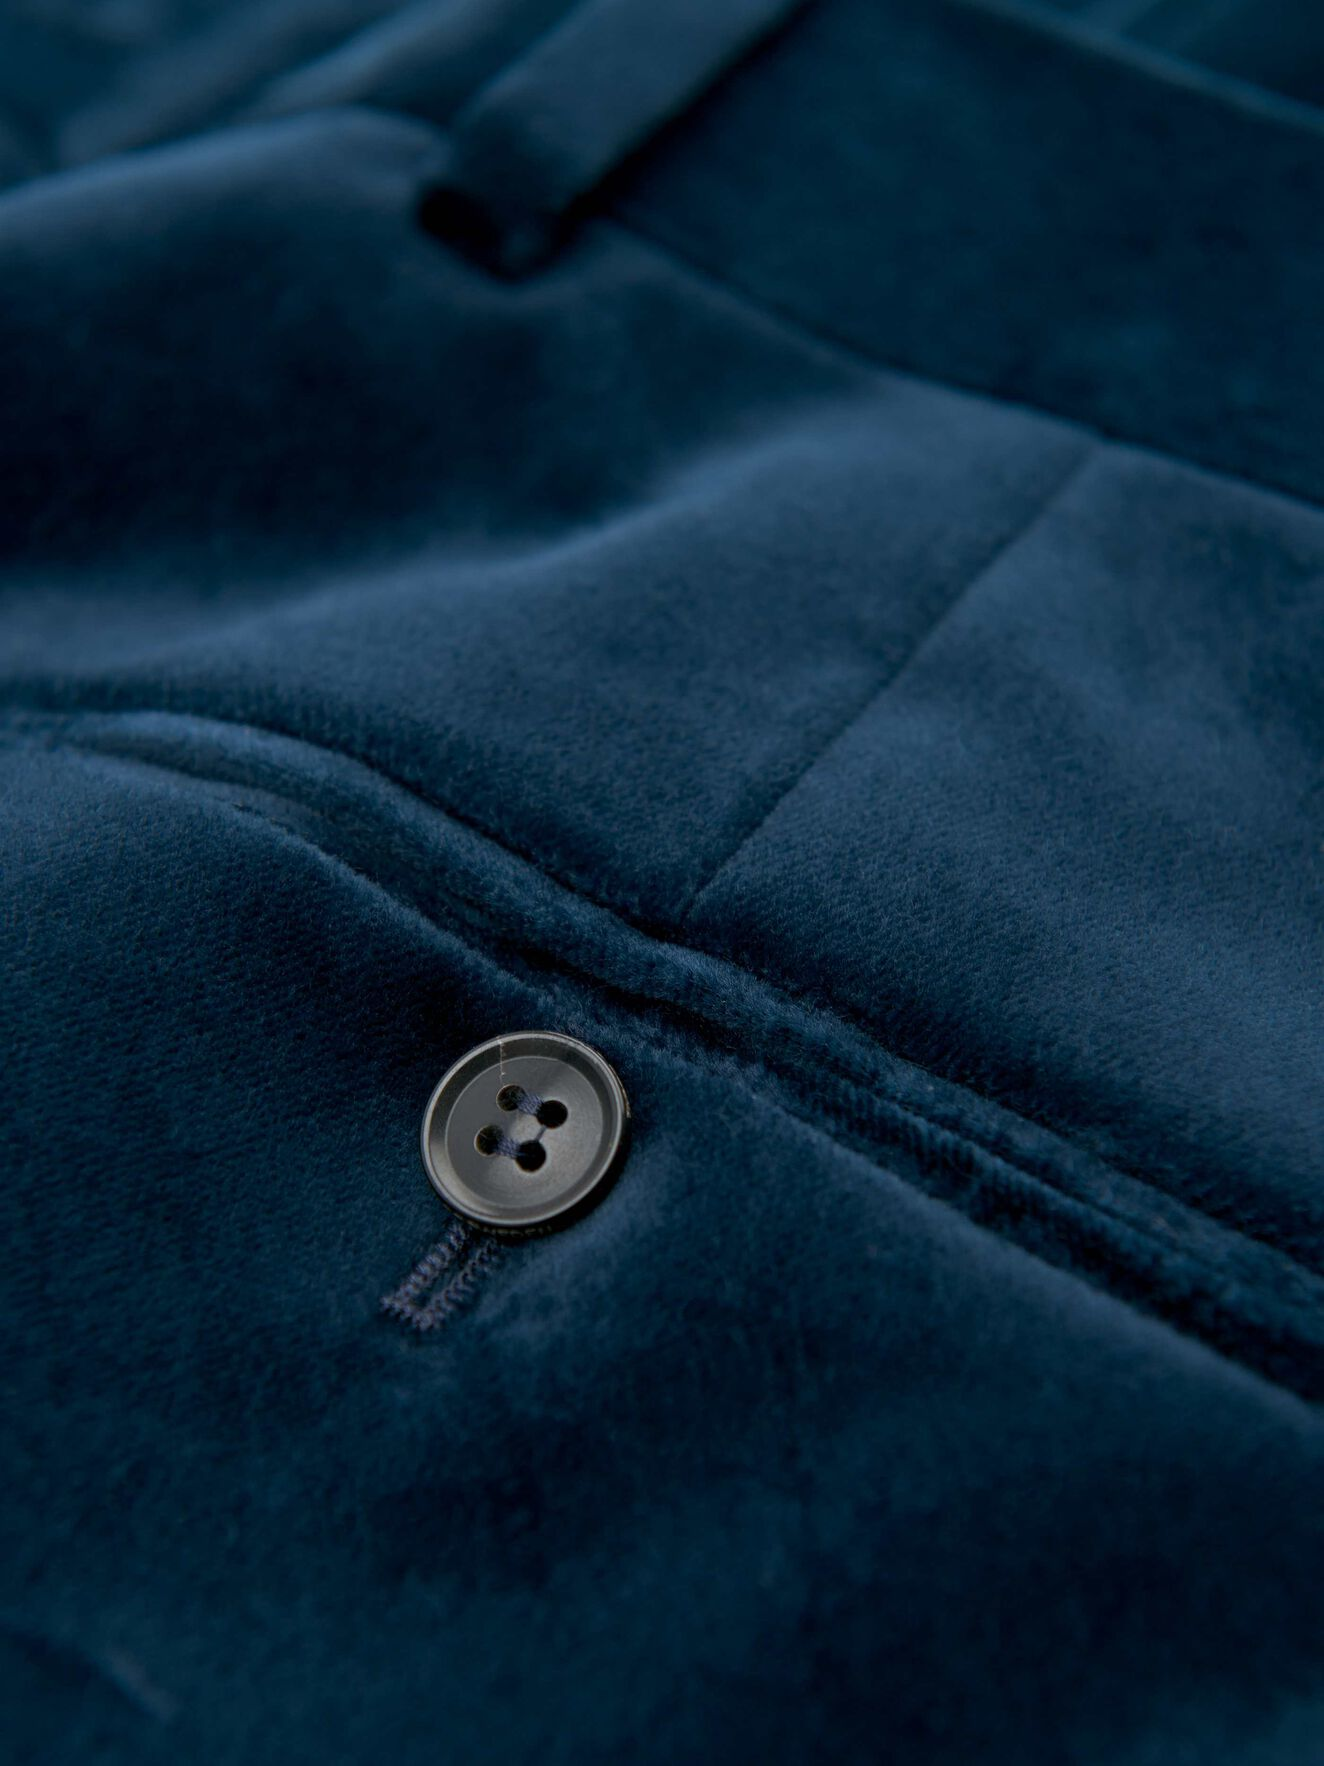 Tordon Trousers in Blues from Tiger of Sweden